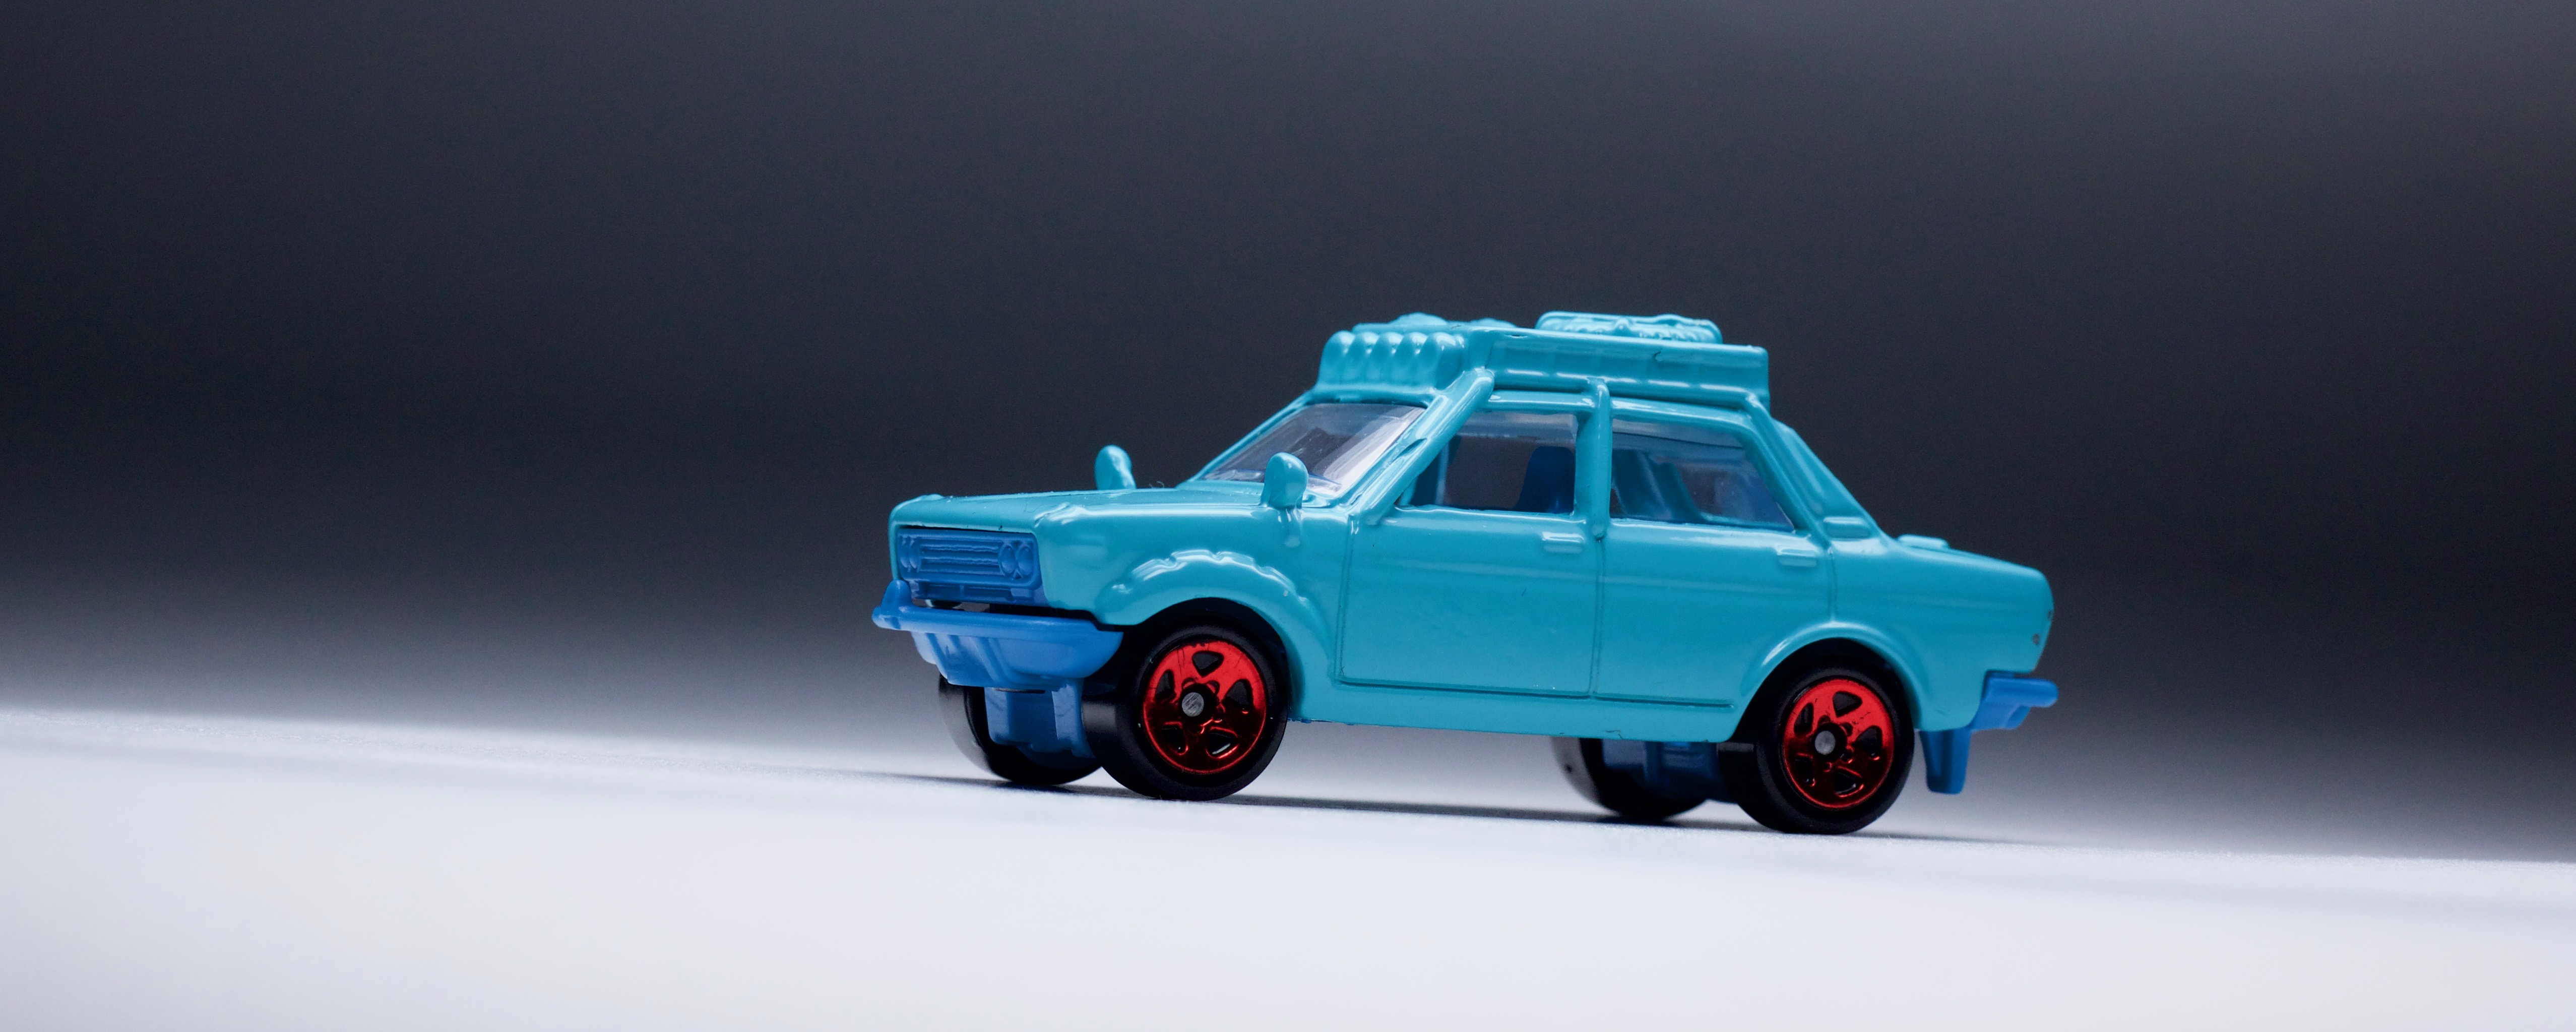 The 2017 Matchbox 70 Datsun 510 Is Ready To Roll Thelamleygroup Decal Hot Wheels Wagon Japan Histori It Wasnt Until May Of This Year That First Prototype Was Shown Looking A Bit Lost Sitting On 5 Spokes But We Got Idea